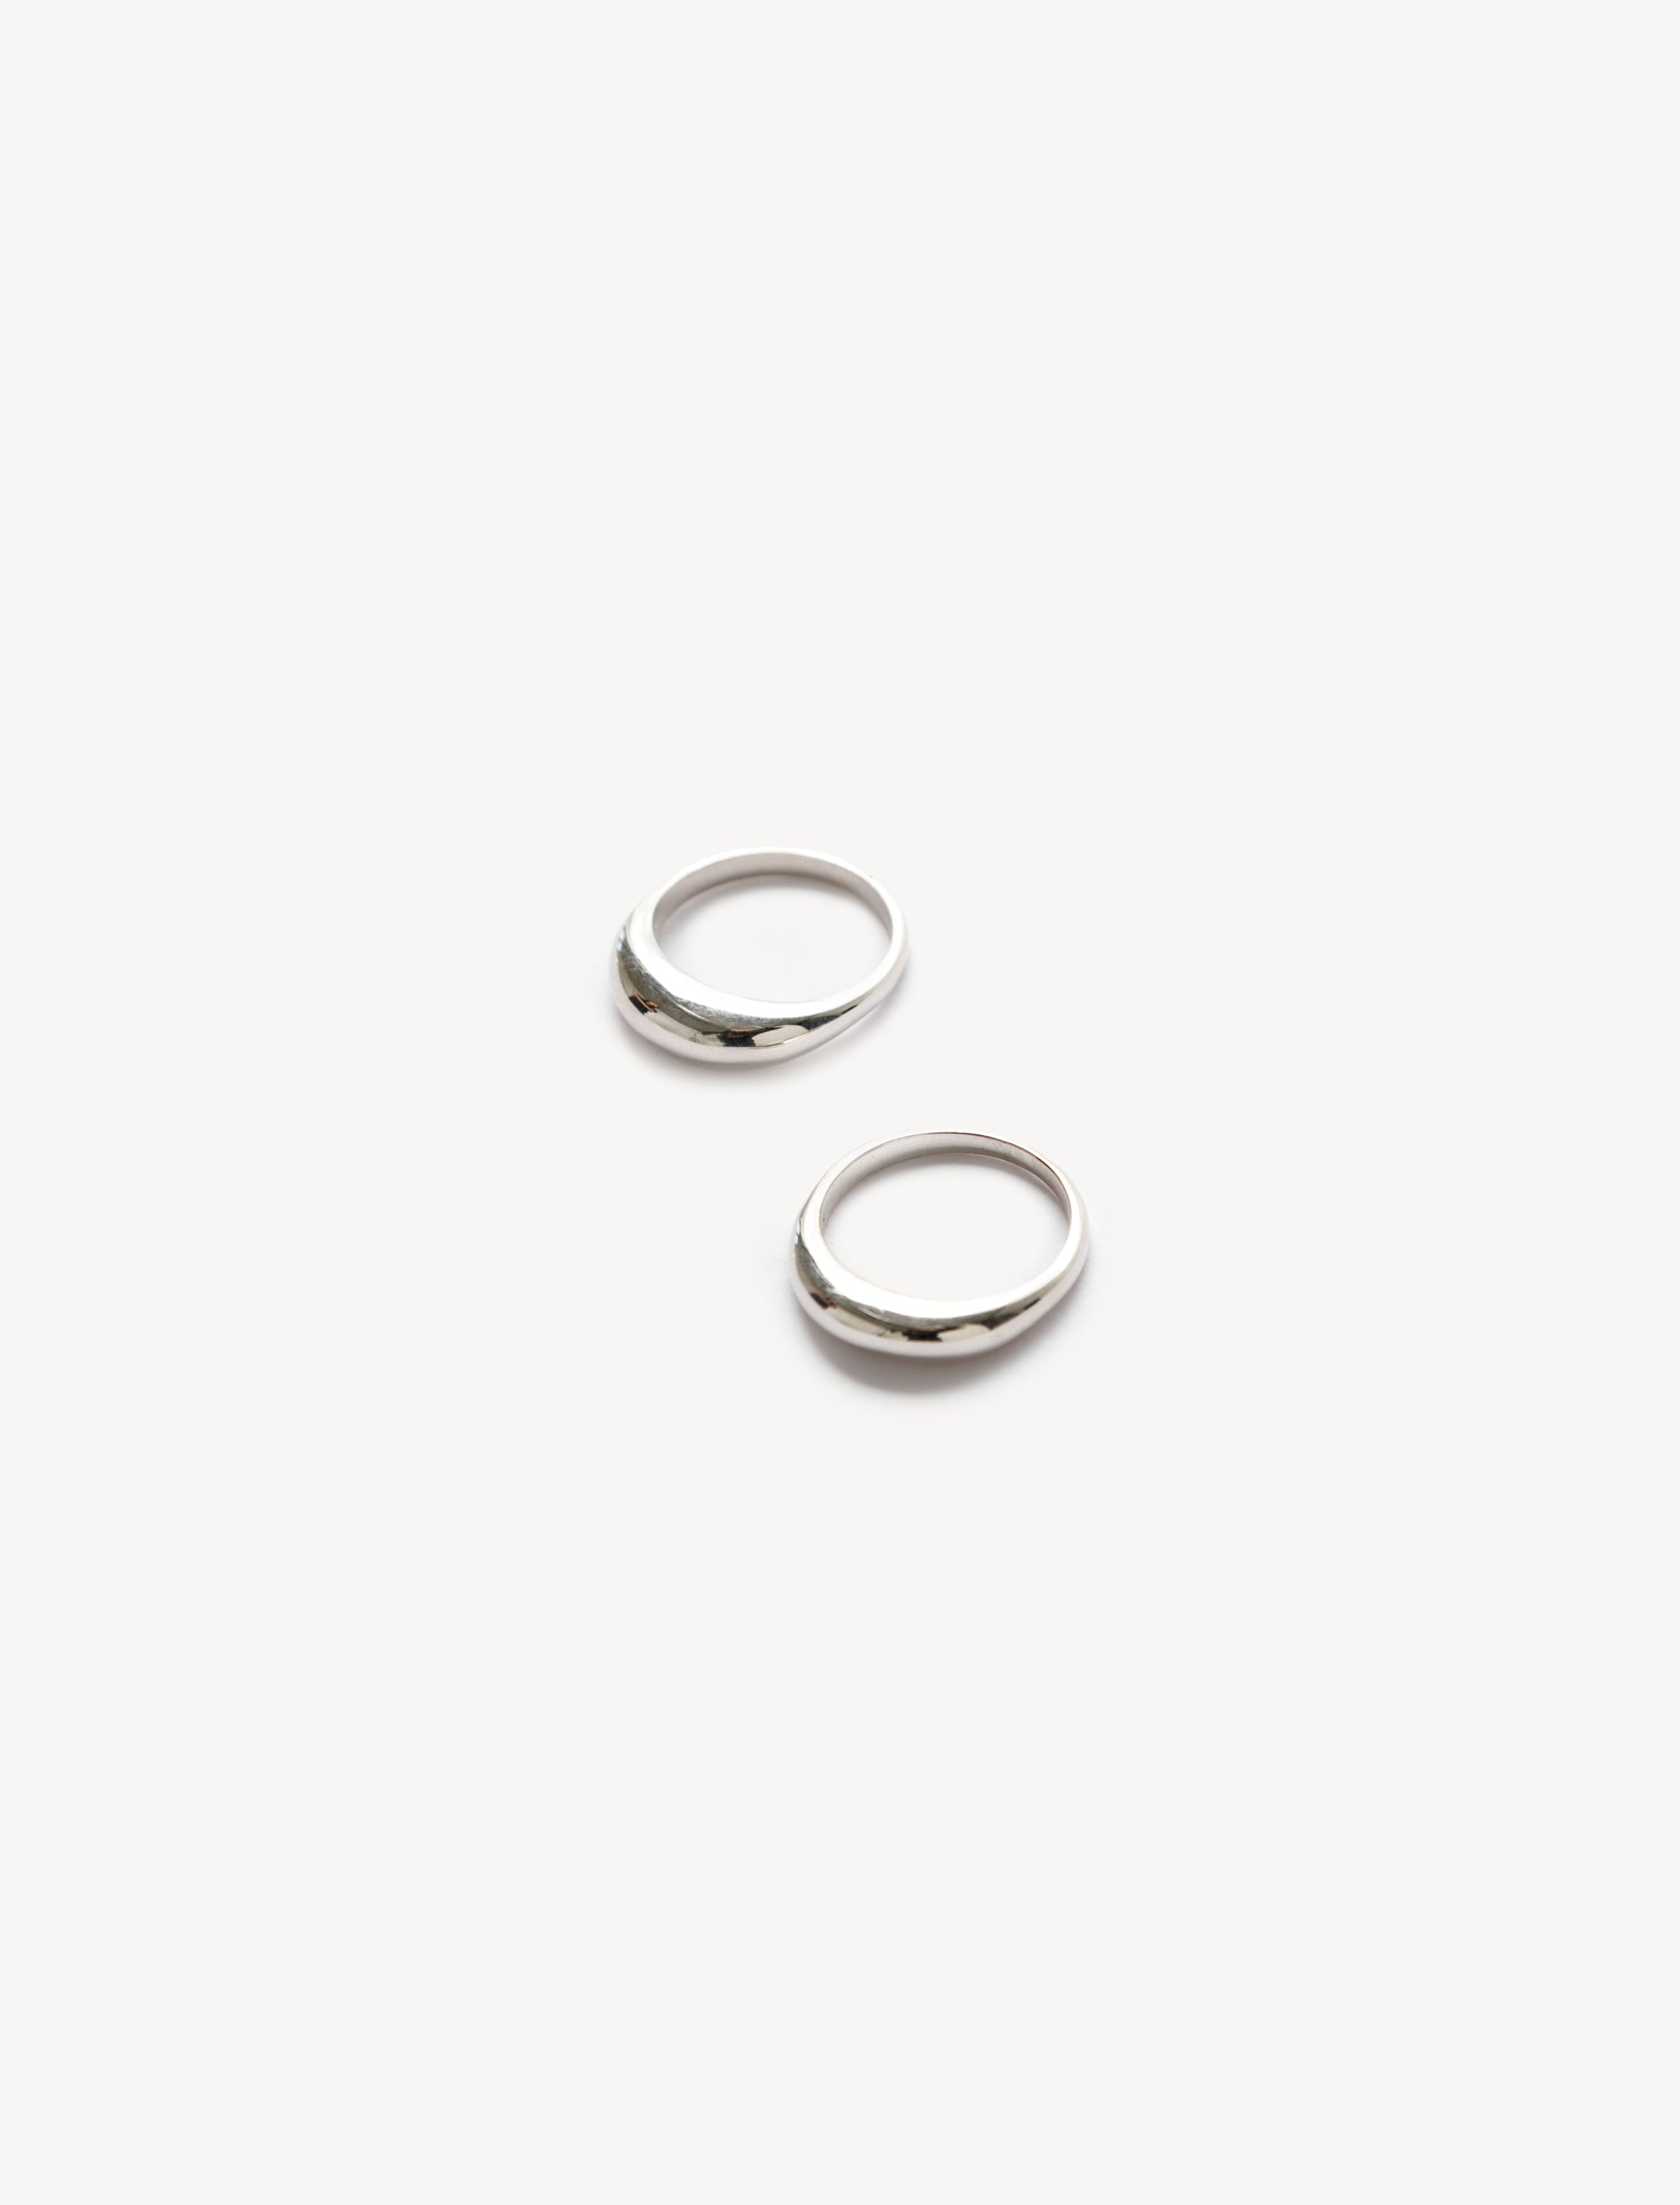 Sophie Buhai Stacking Rings (set of two)